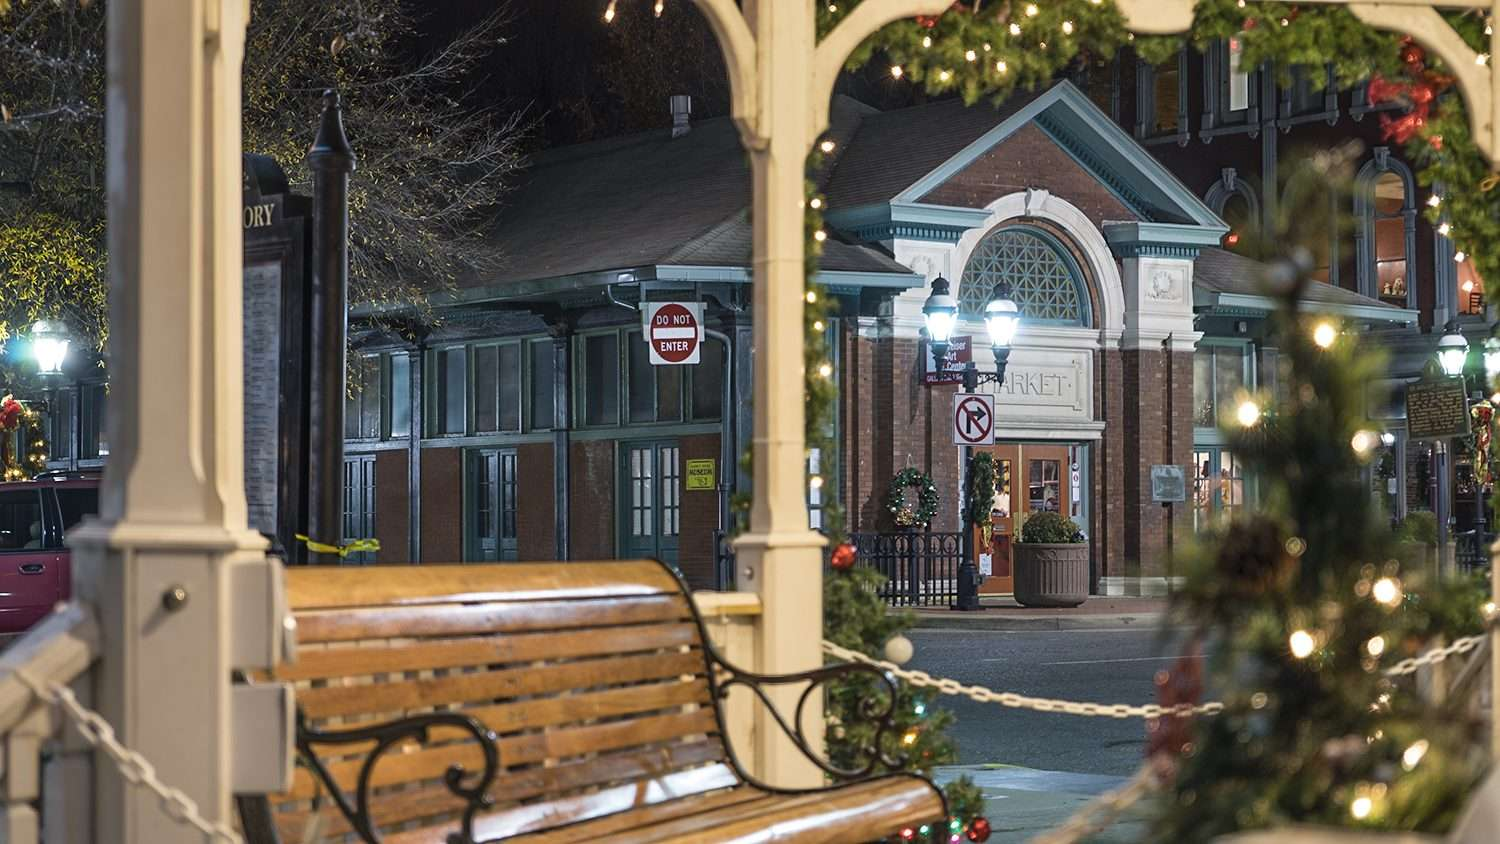 Nov 19, 2017 - Gazebo Christmas Broadway Main Street Downtown Paducah, KY/photonews247.com